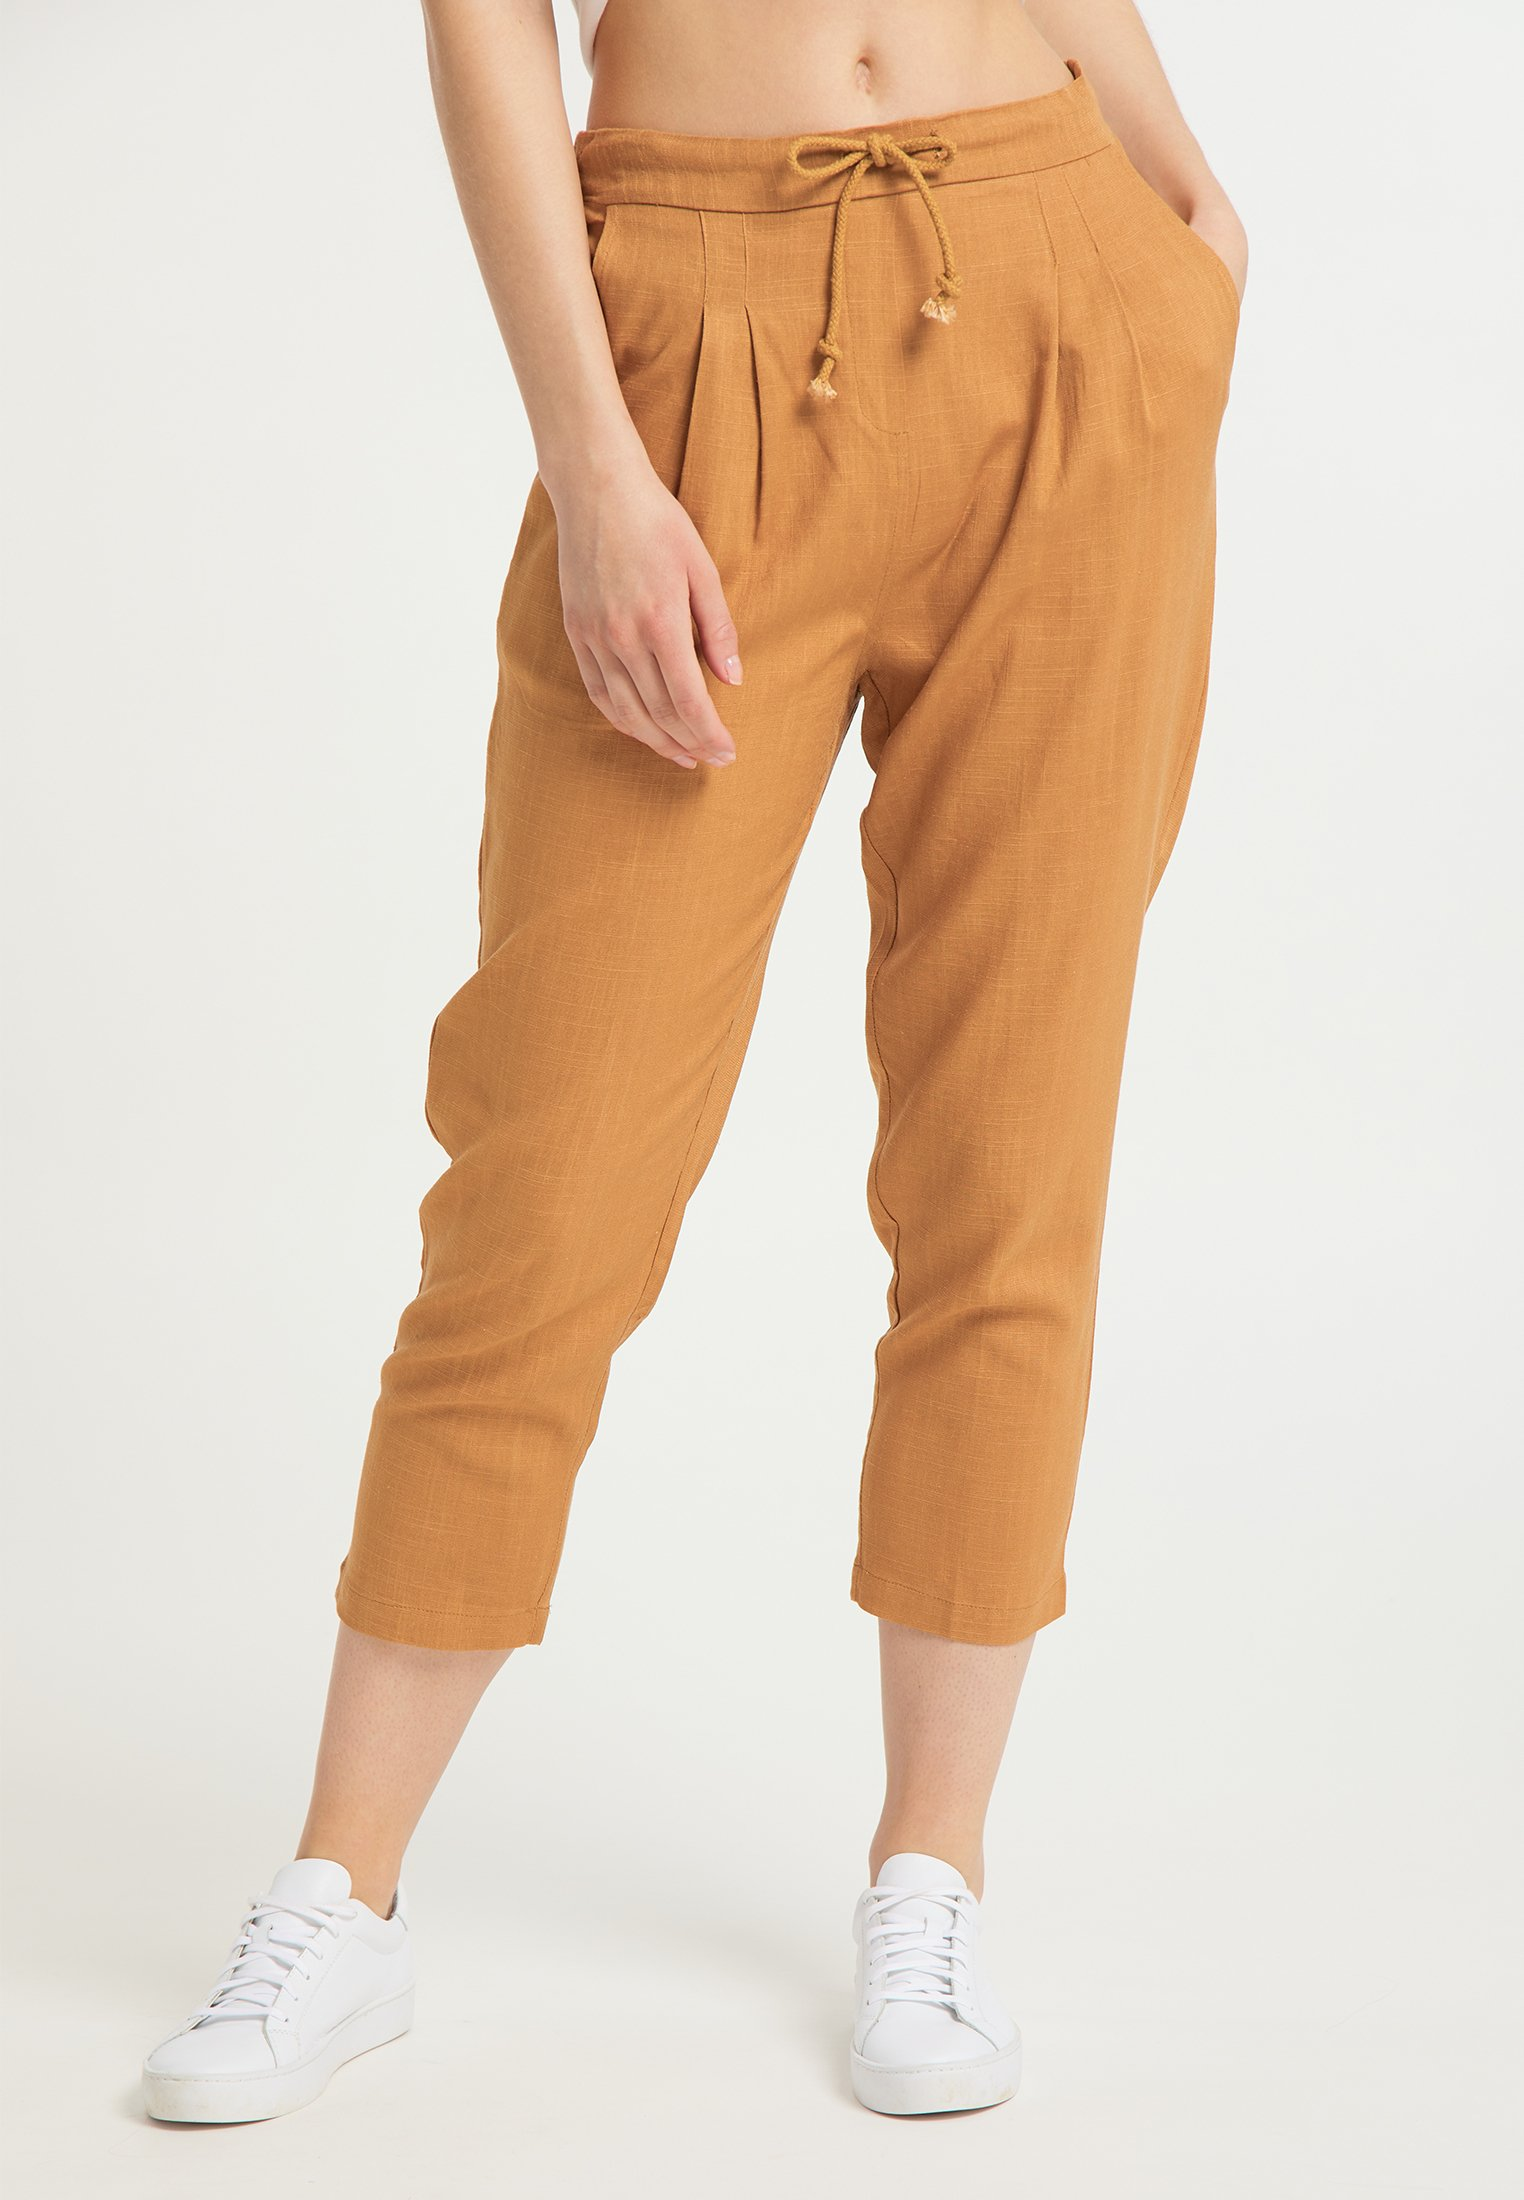 Recommend Discount Women's Clothing usha Trousers hellbraun 3mk0aTlrM